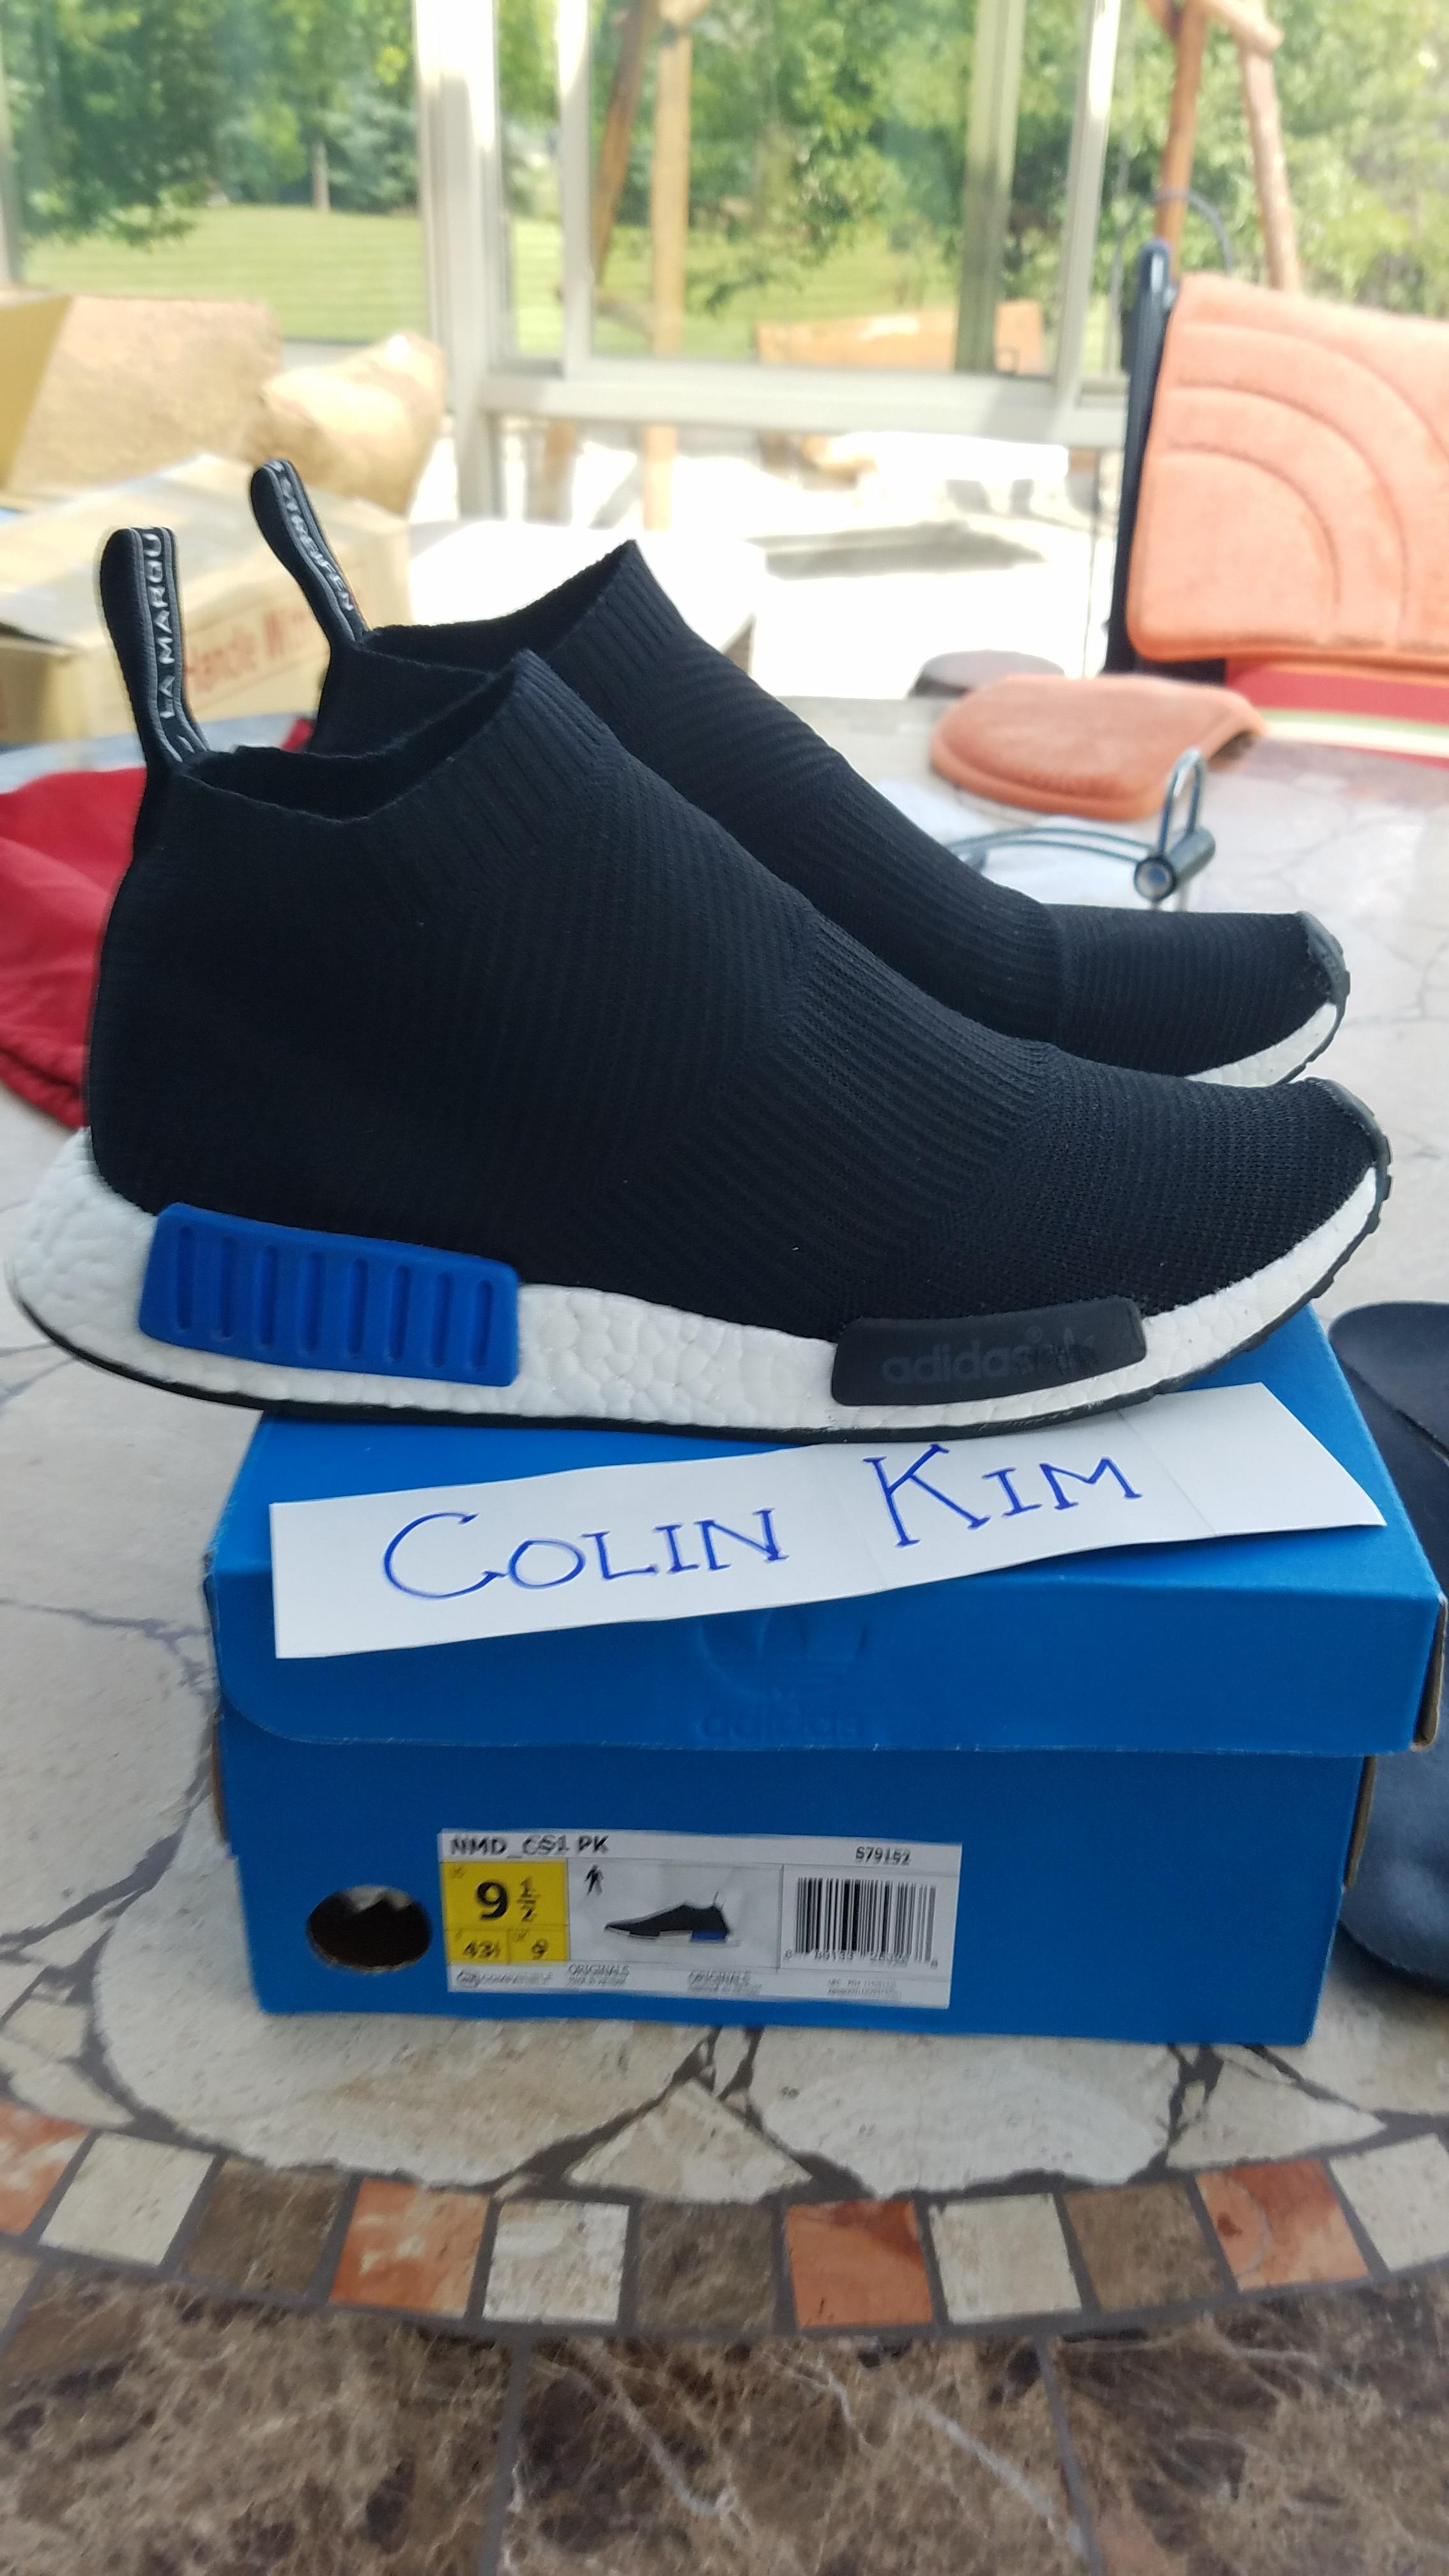 f8e9039553 Adidas NMD City Sock Core Black Lush Blue Size 9.5 - Hi-Top Sneakers ...